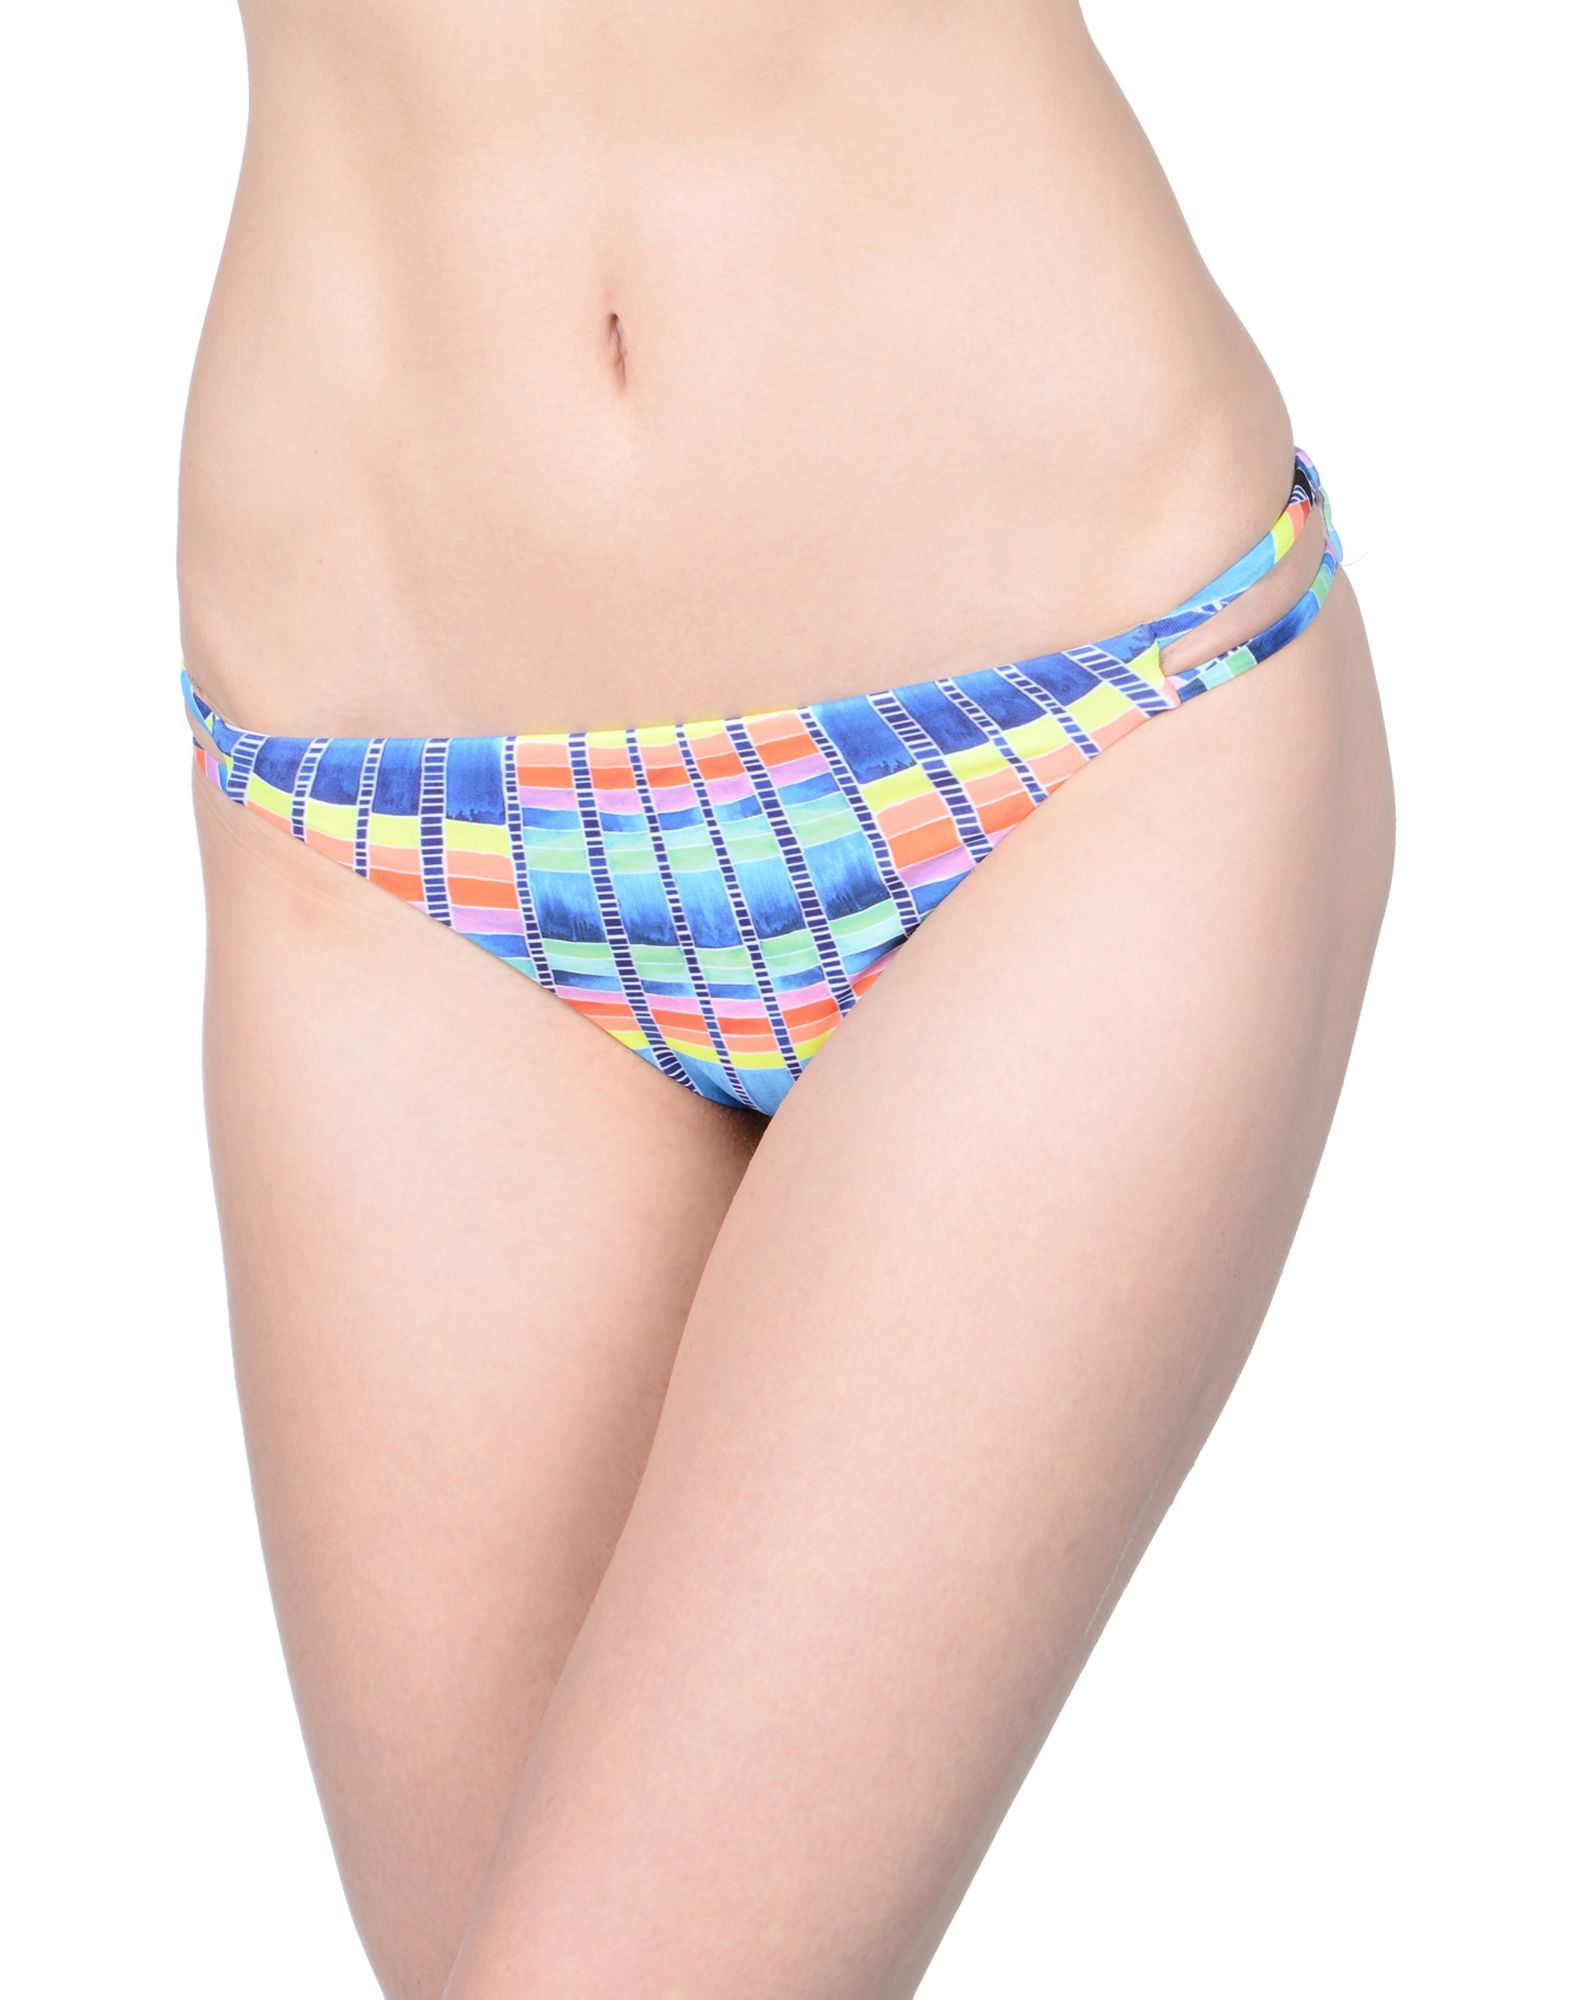 SALE - 30% and more off on Swimwear